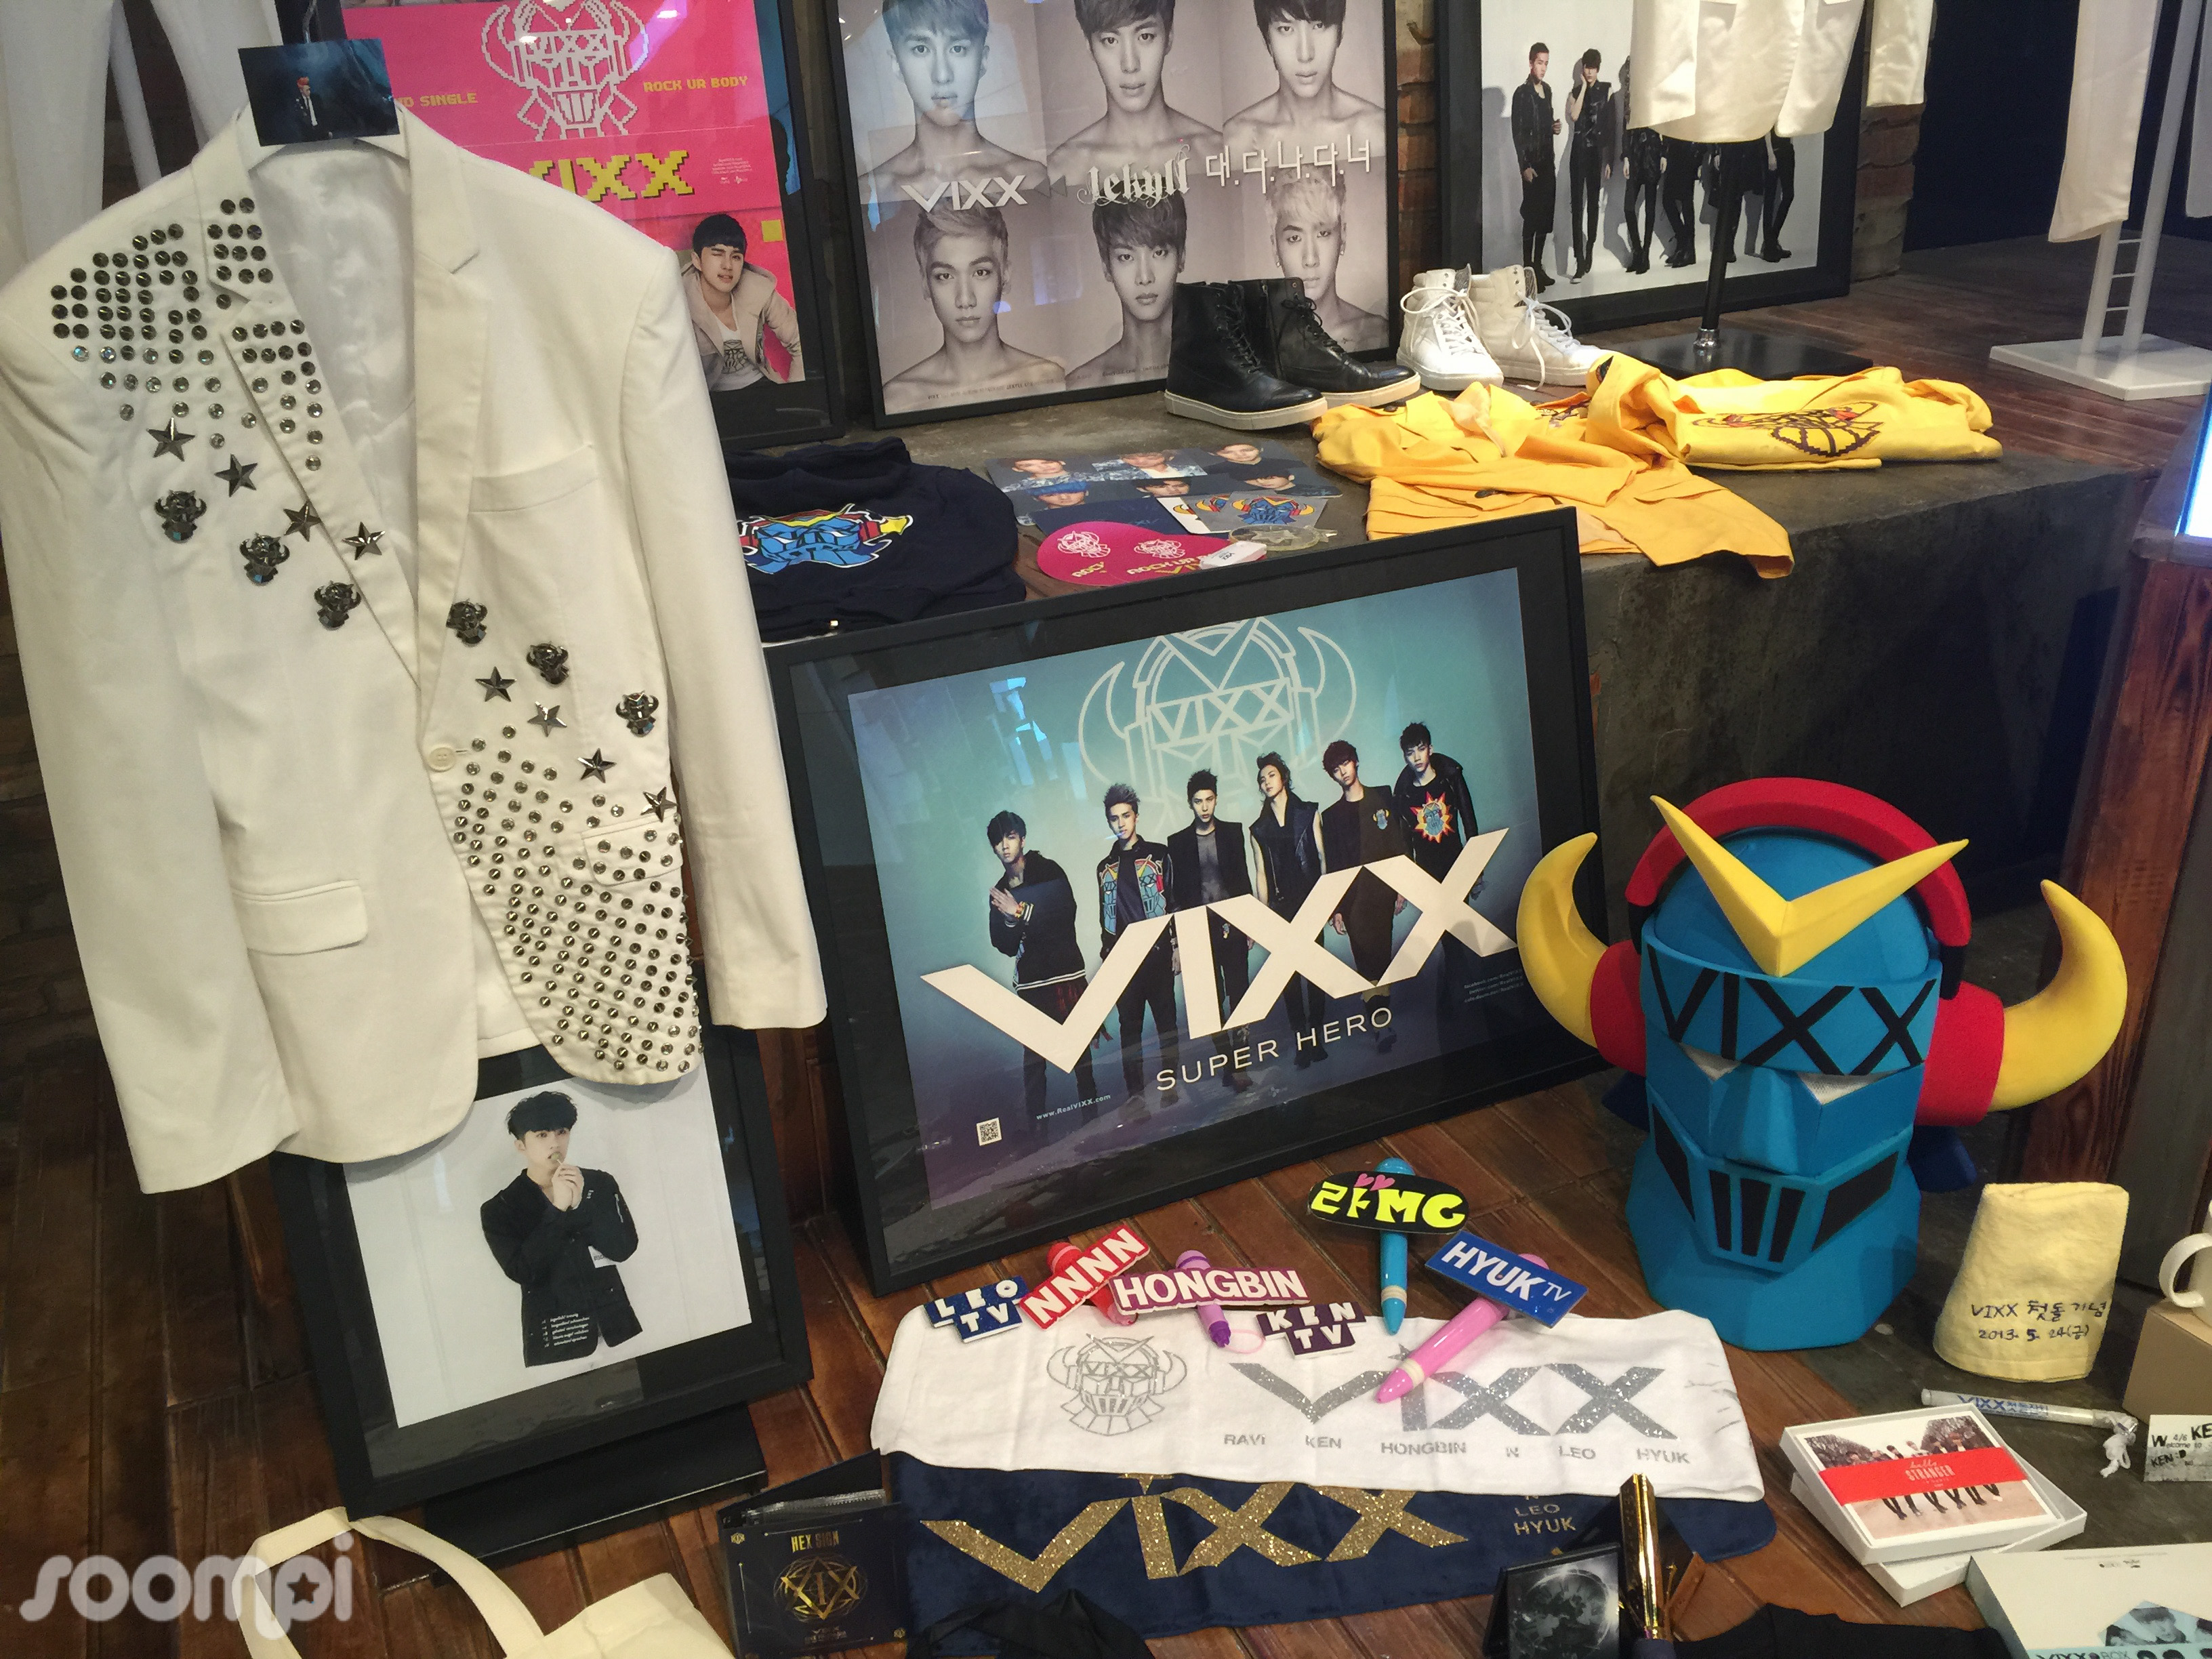 Seouling: Getting Real With Real VIXX